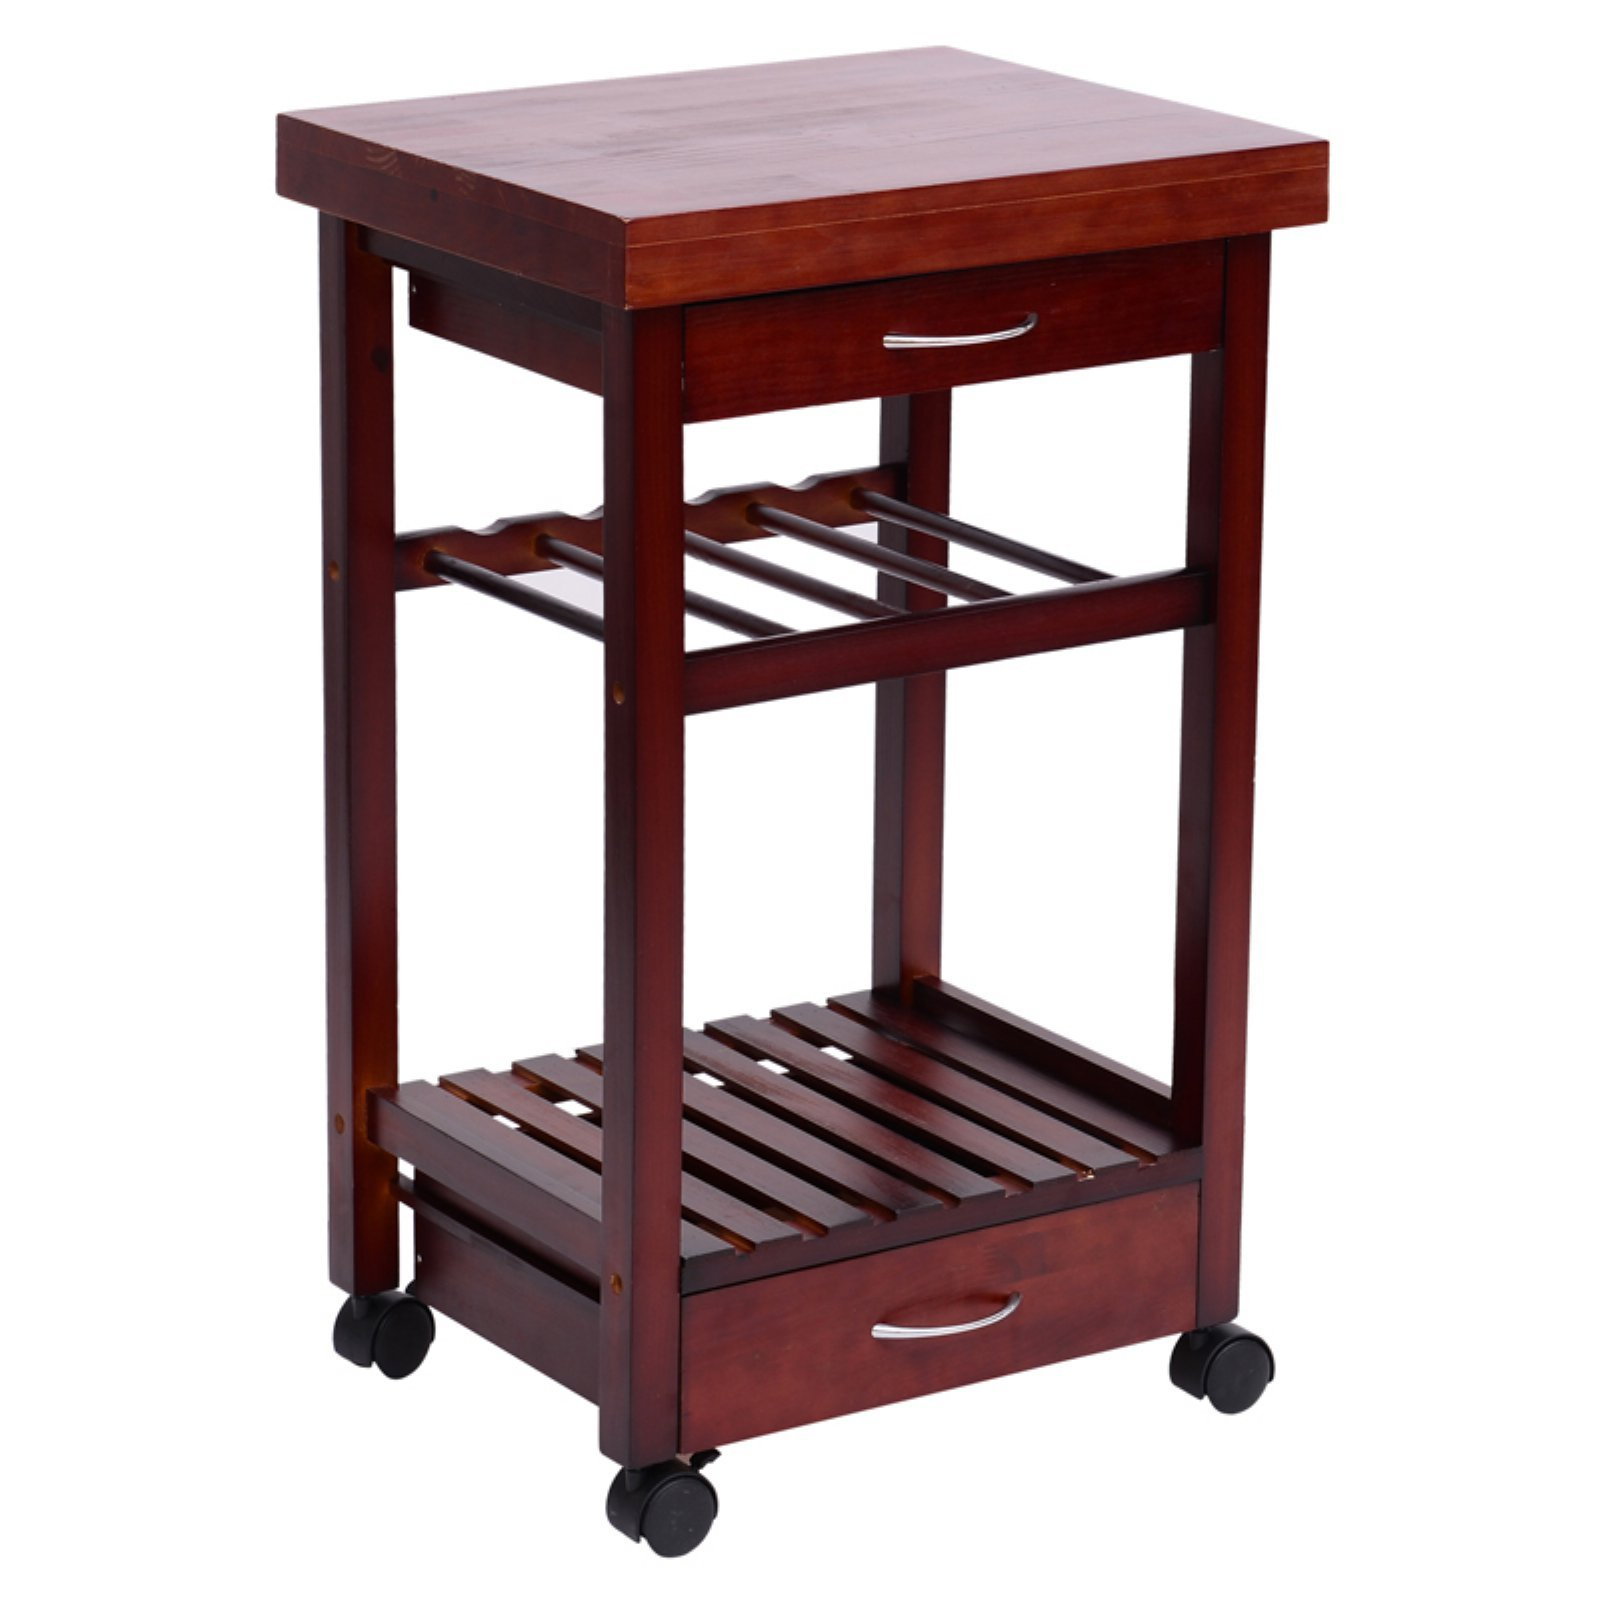 Excellent 19 Inches Rolling Wooden Storage Cart Kitchen Trolley with Drawers and Wine Rack, Ideal for Smaller Areas, Gives Extra Storage Space Without Sacrificing Style + Expert Guide